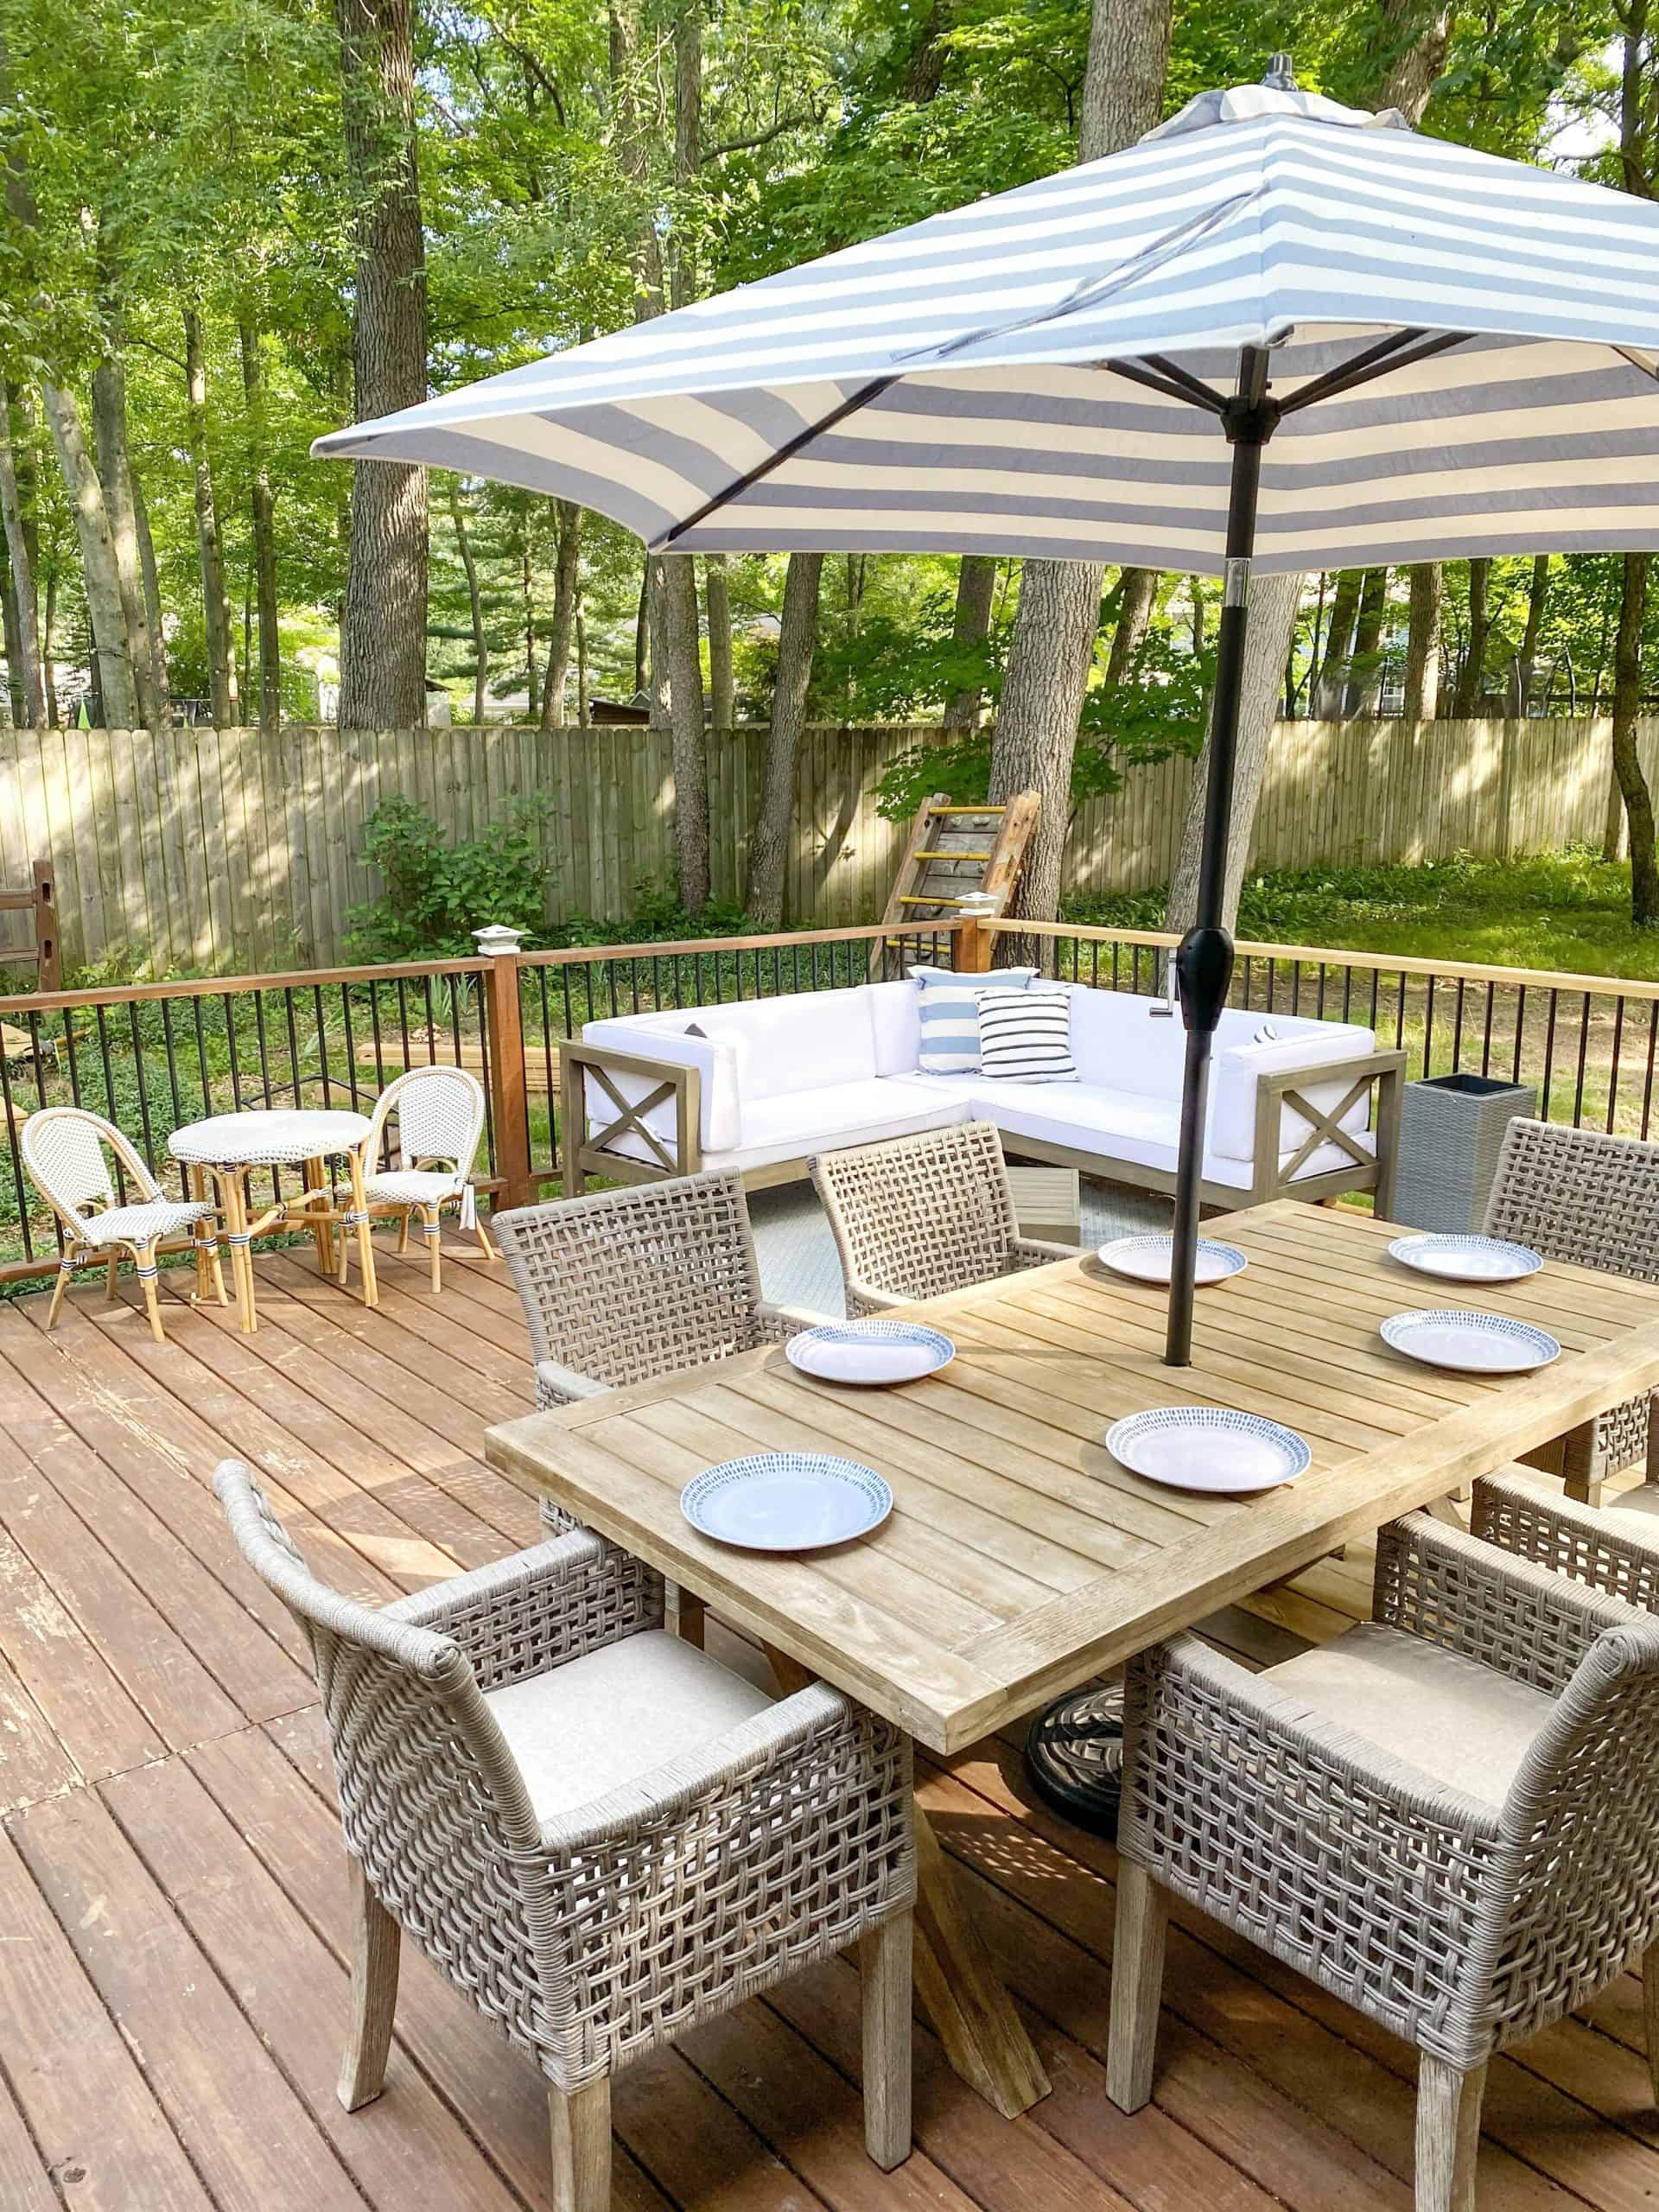 preppy outdoor patio decor |covered preppy patio decor | Preppy Outdoor Decor by popular Michigan life and style blog, The House of Navy: image of a patio decorated with a outdoor dining set, light blue and white stripe umbrella, sectional couch with white cushions and a kids bistro table and chair set.